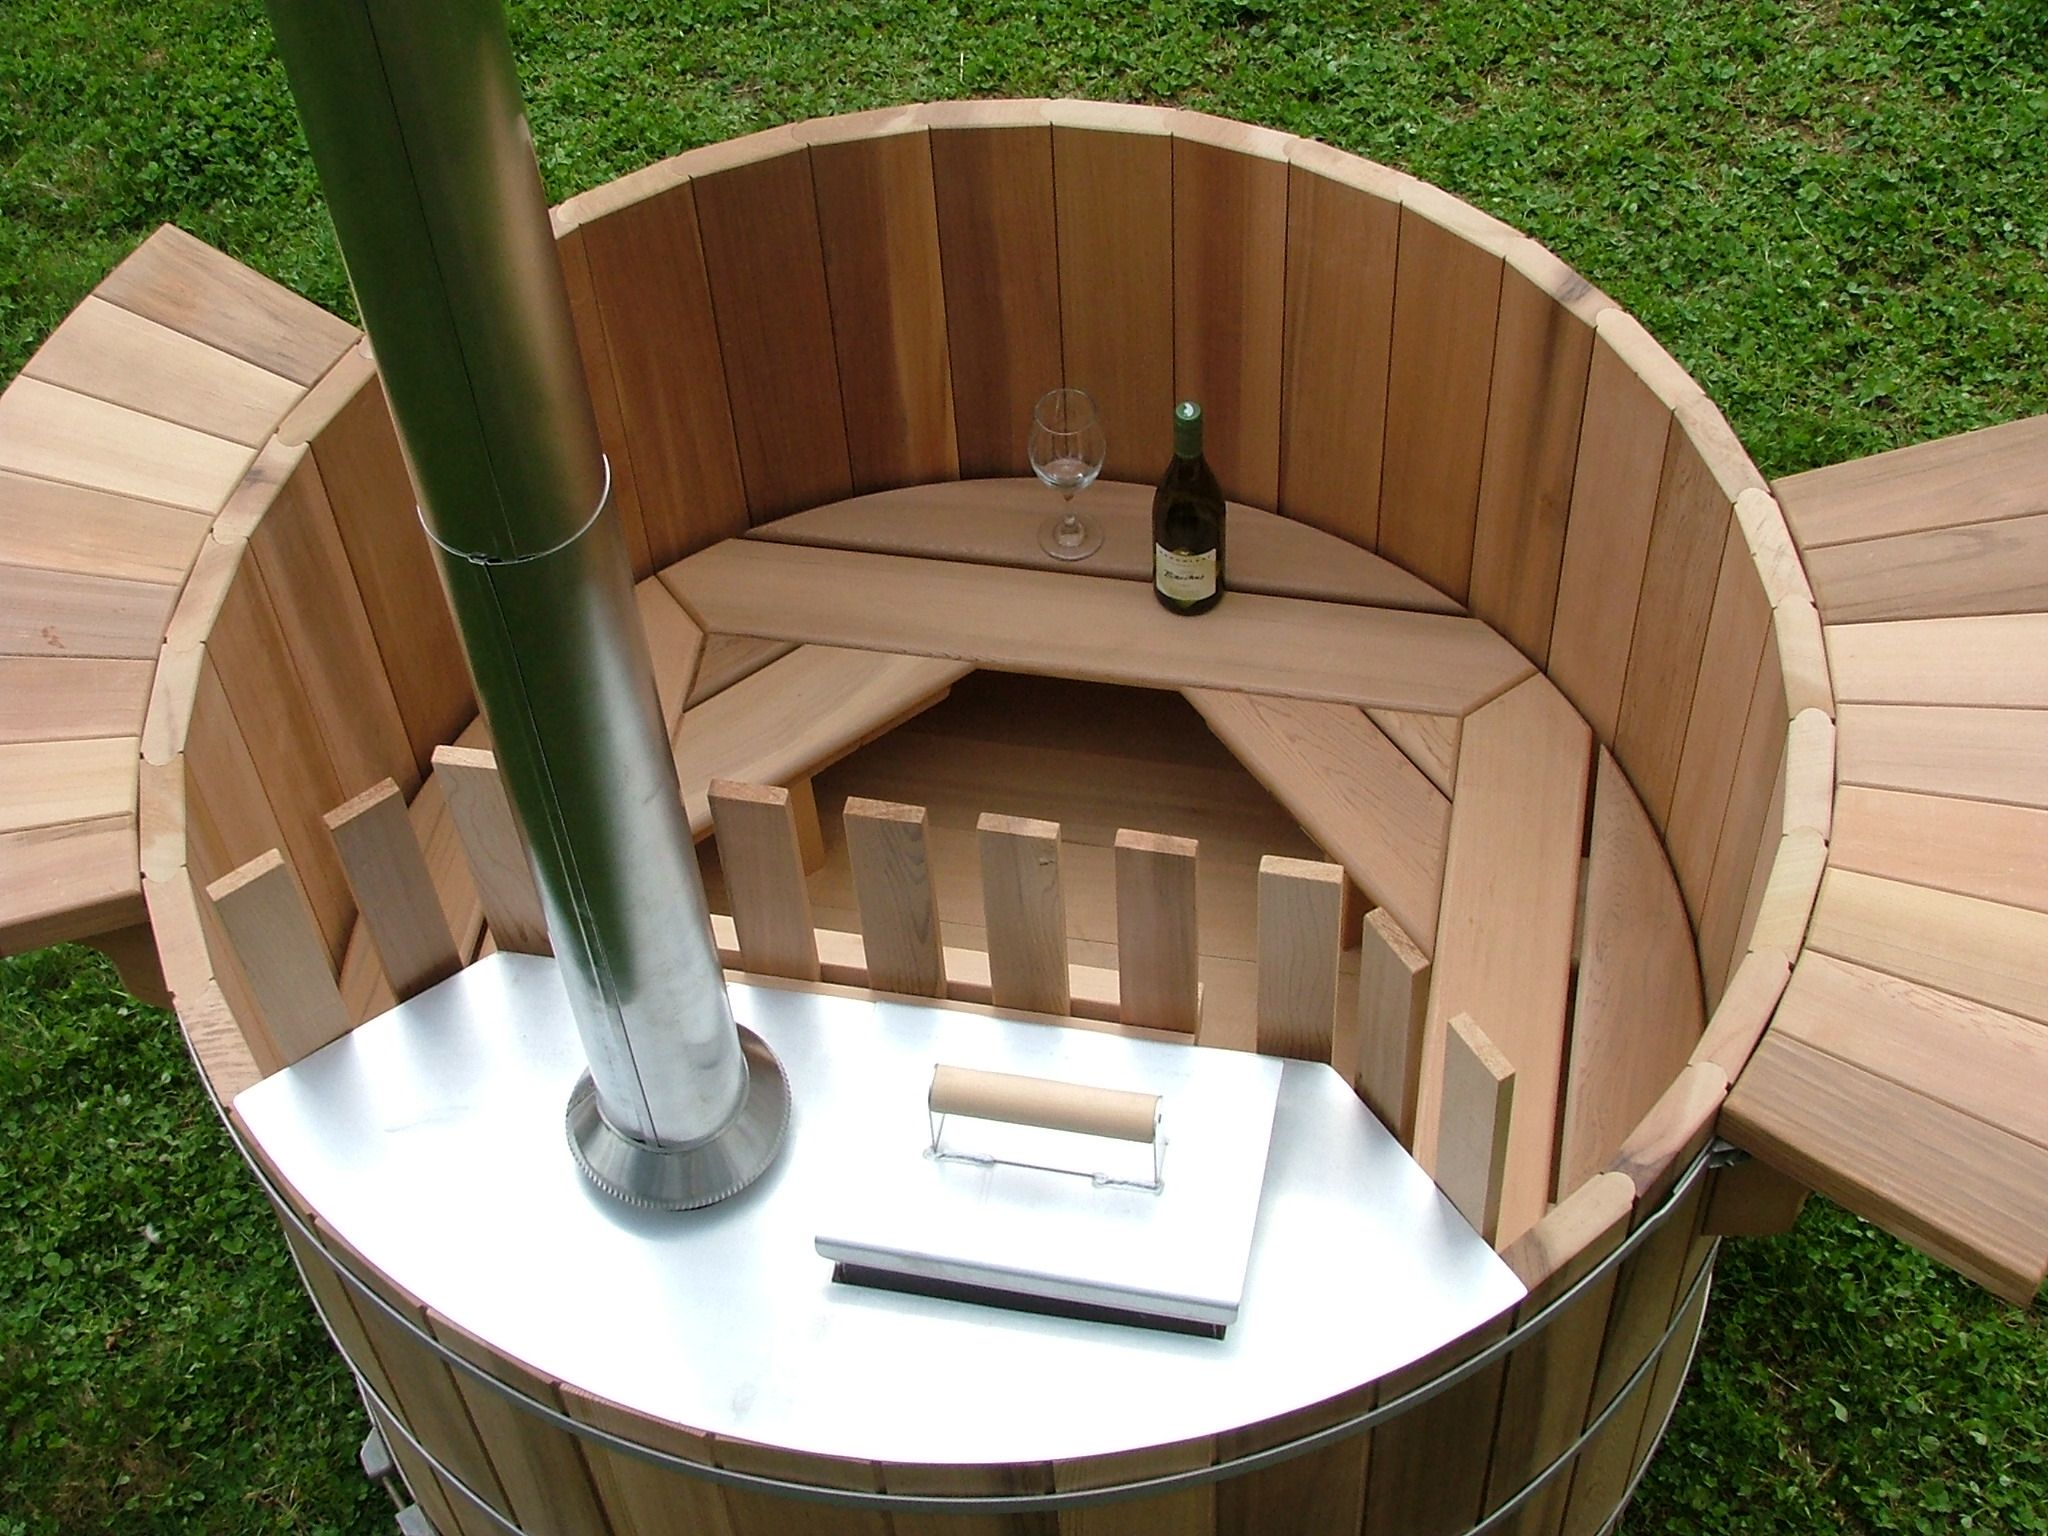 5x3 Wood Fired High Res 008 Hot Tub Outdoor Hot Tub Plans